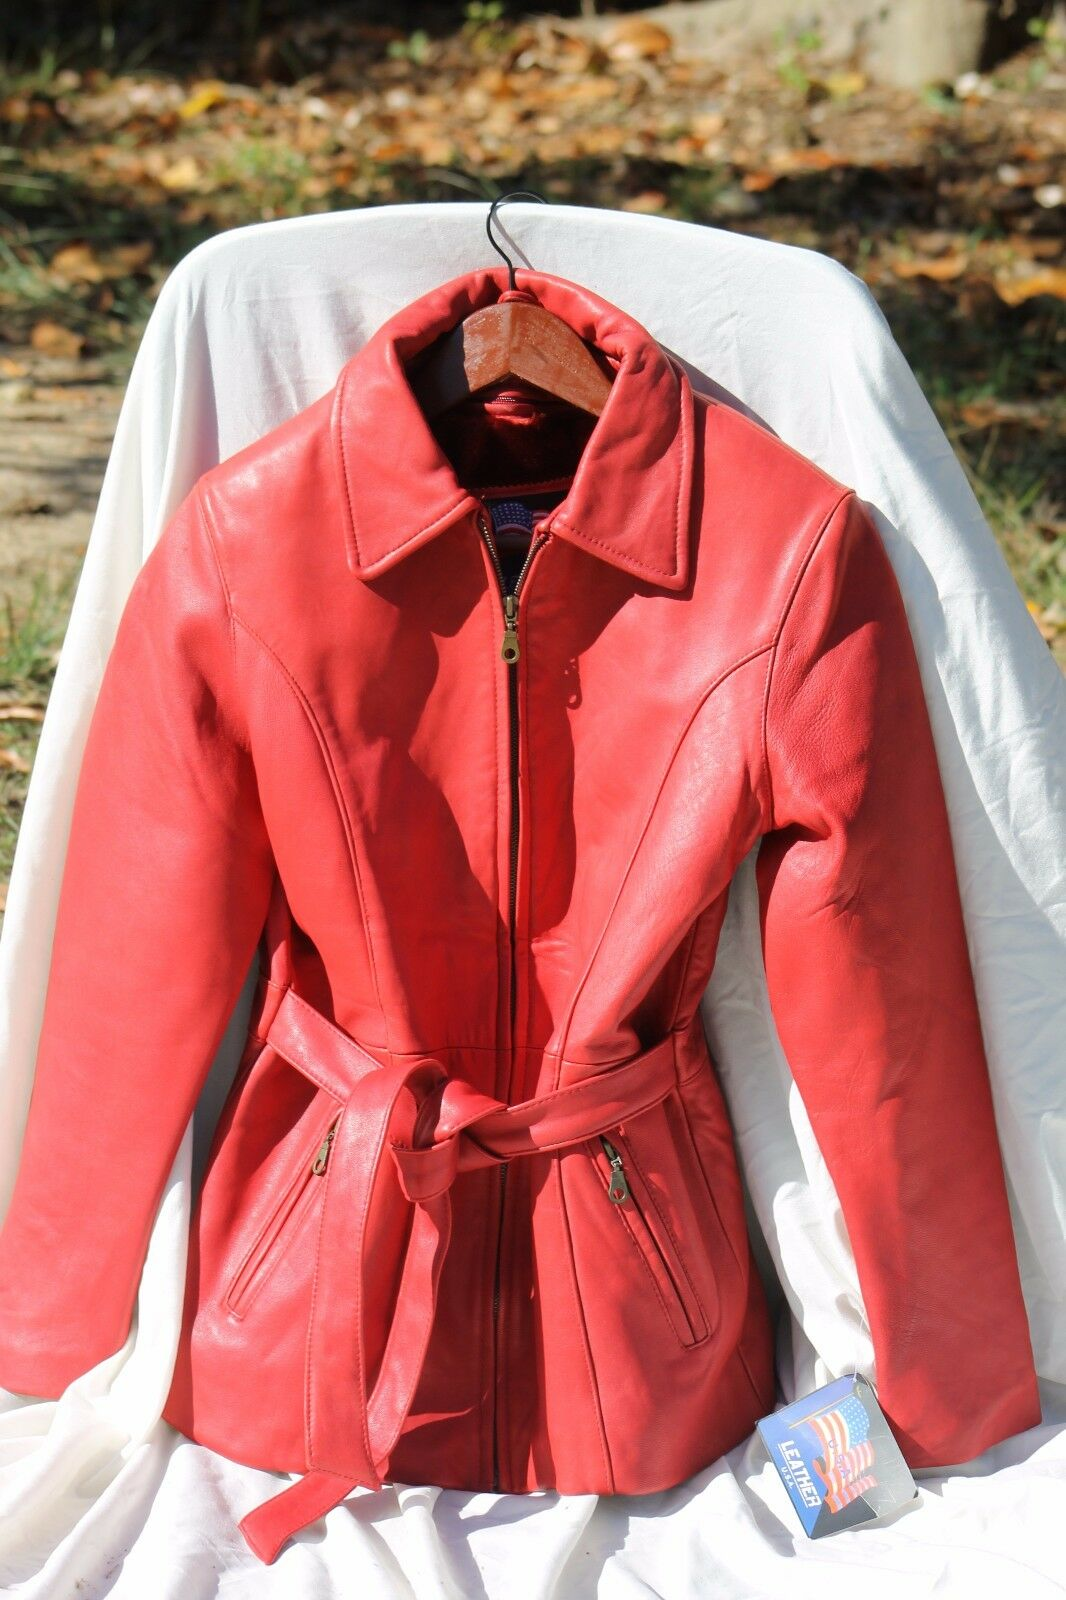 Women's SM red leather coat, zip-front, belted, removeable lining, new, Made USA